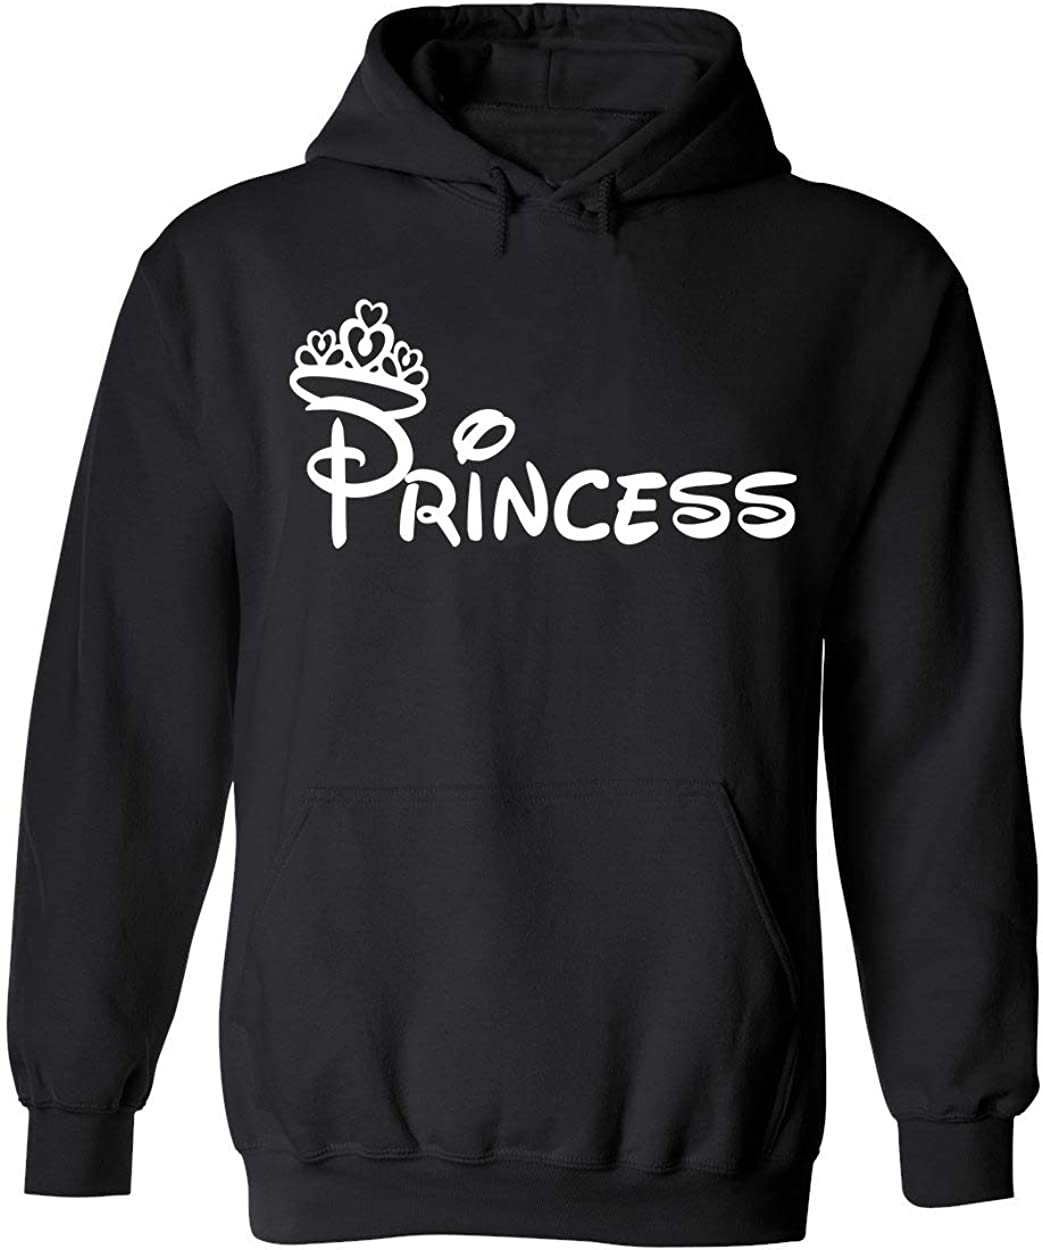 Mickey and Minnie Most Selller Hoodie Sweatshirt Super beauty product restock quality top! Hooded Unisex San Antonio Mall